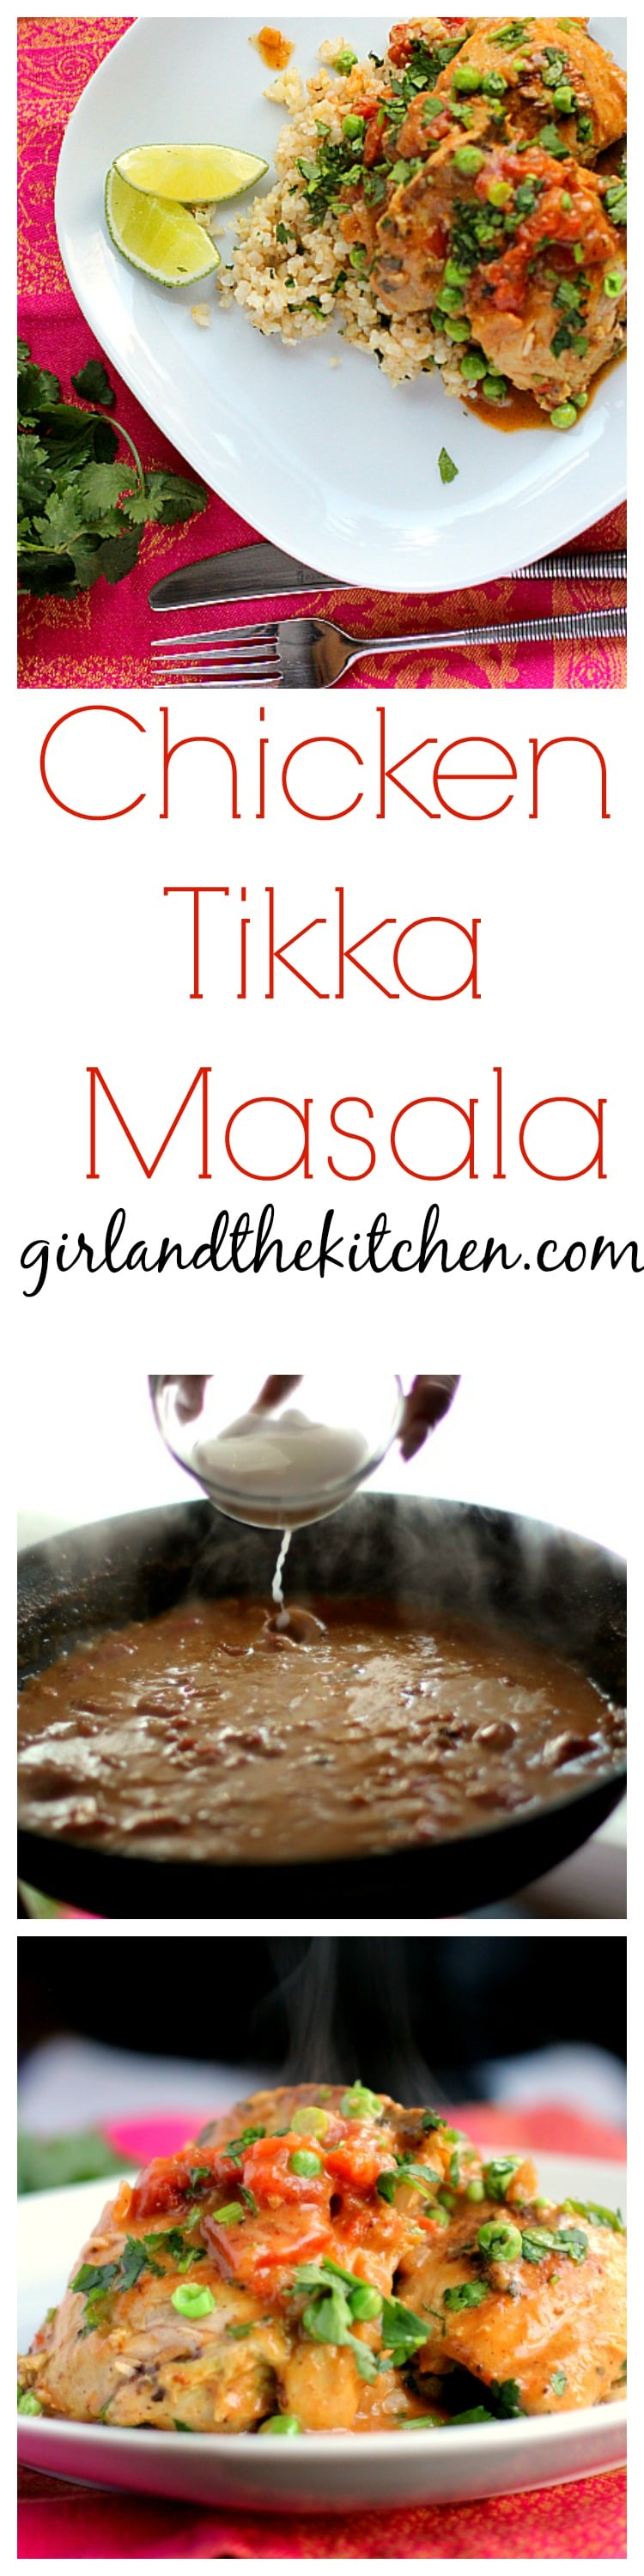 My chicken tikka masala recipe is a mush for when you want a new spin on the classic weeknight chicken.  A super simple and delicious dish full of Indian spices and flavors!  This is a must when you want to amp up the classic chicken dish!